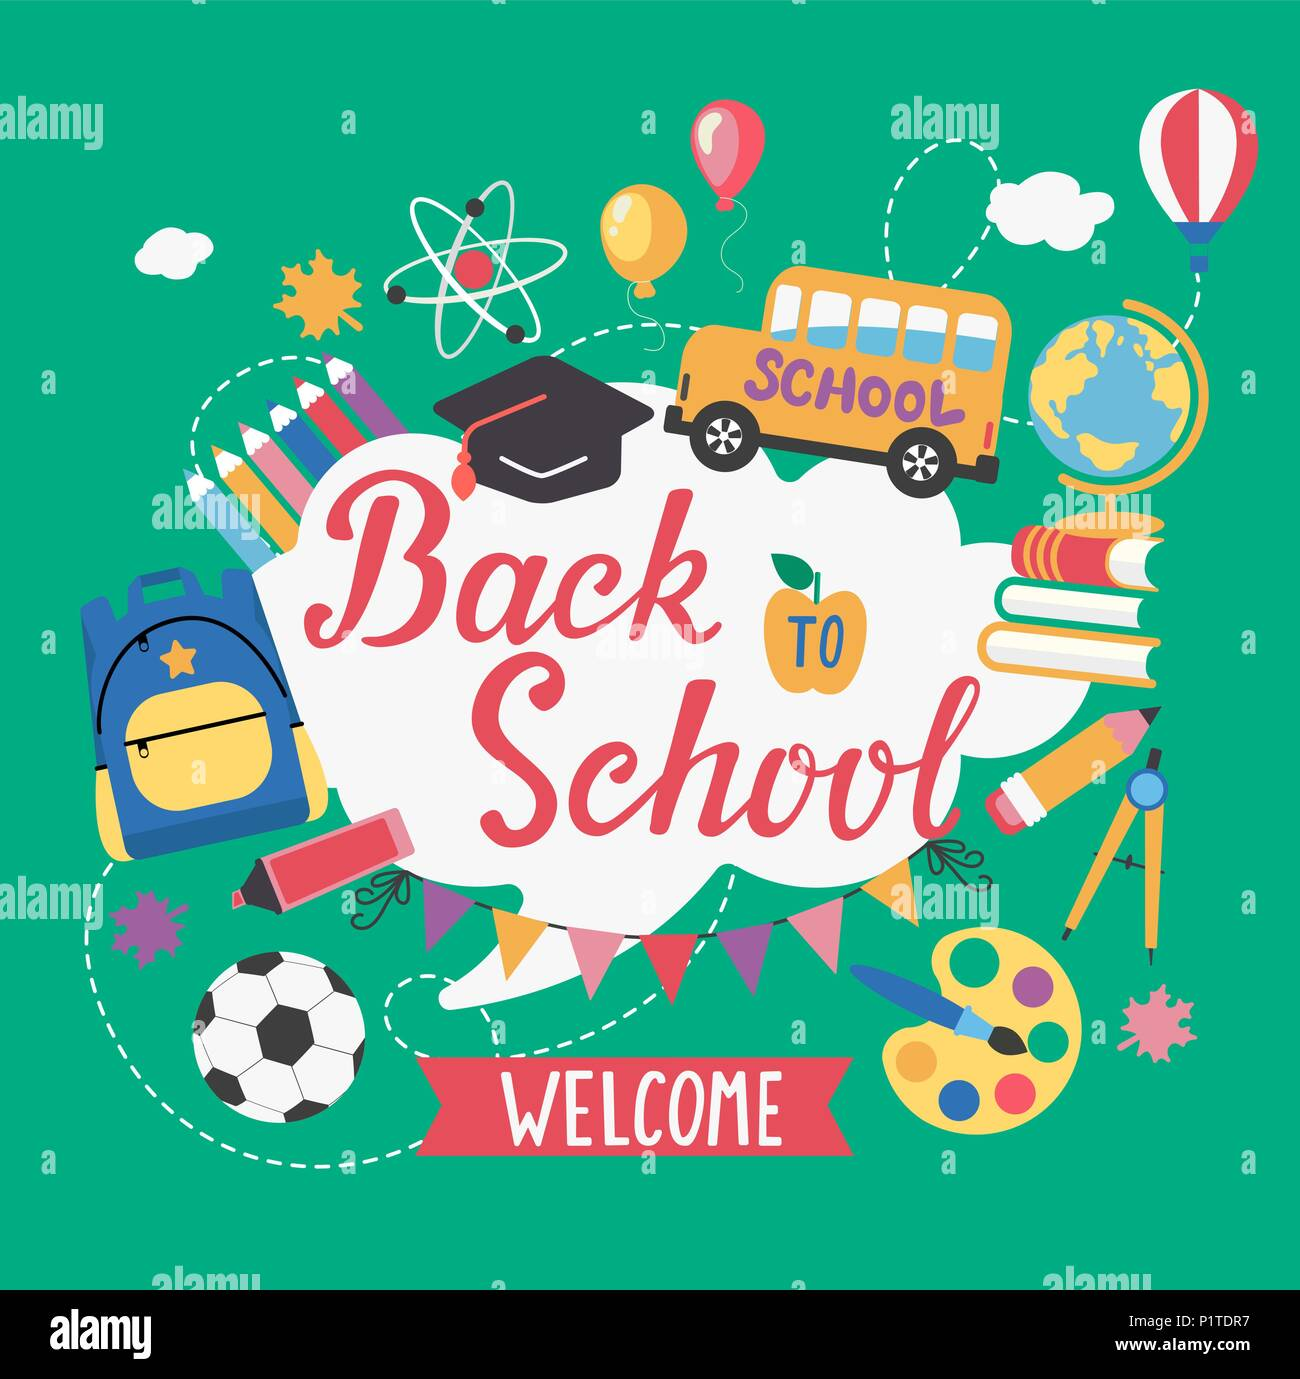 Banner welcome Back To School With different Flat Icons. Education Concept.Vector Illustration. - Stock Image